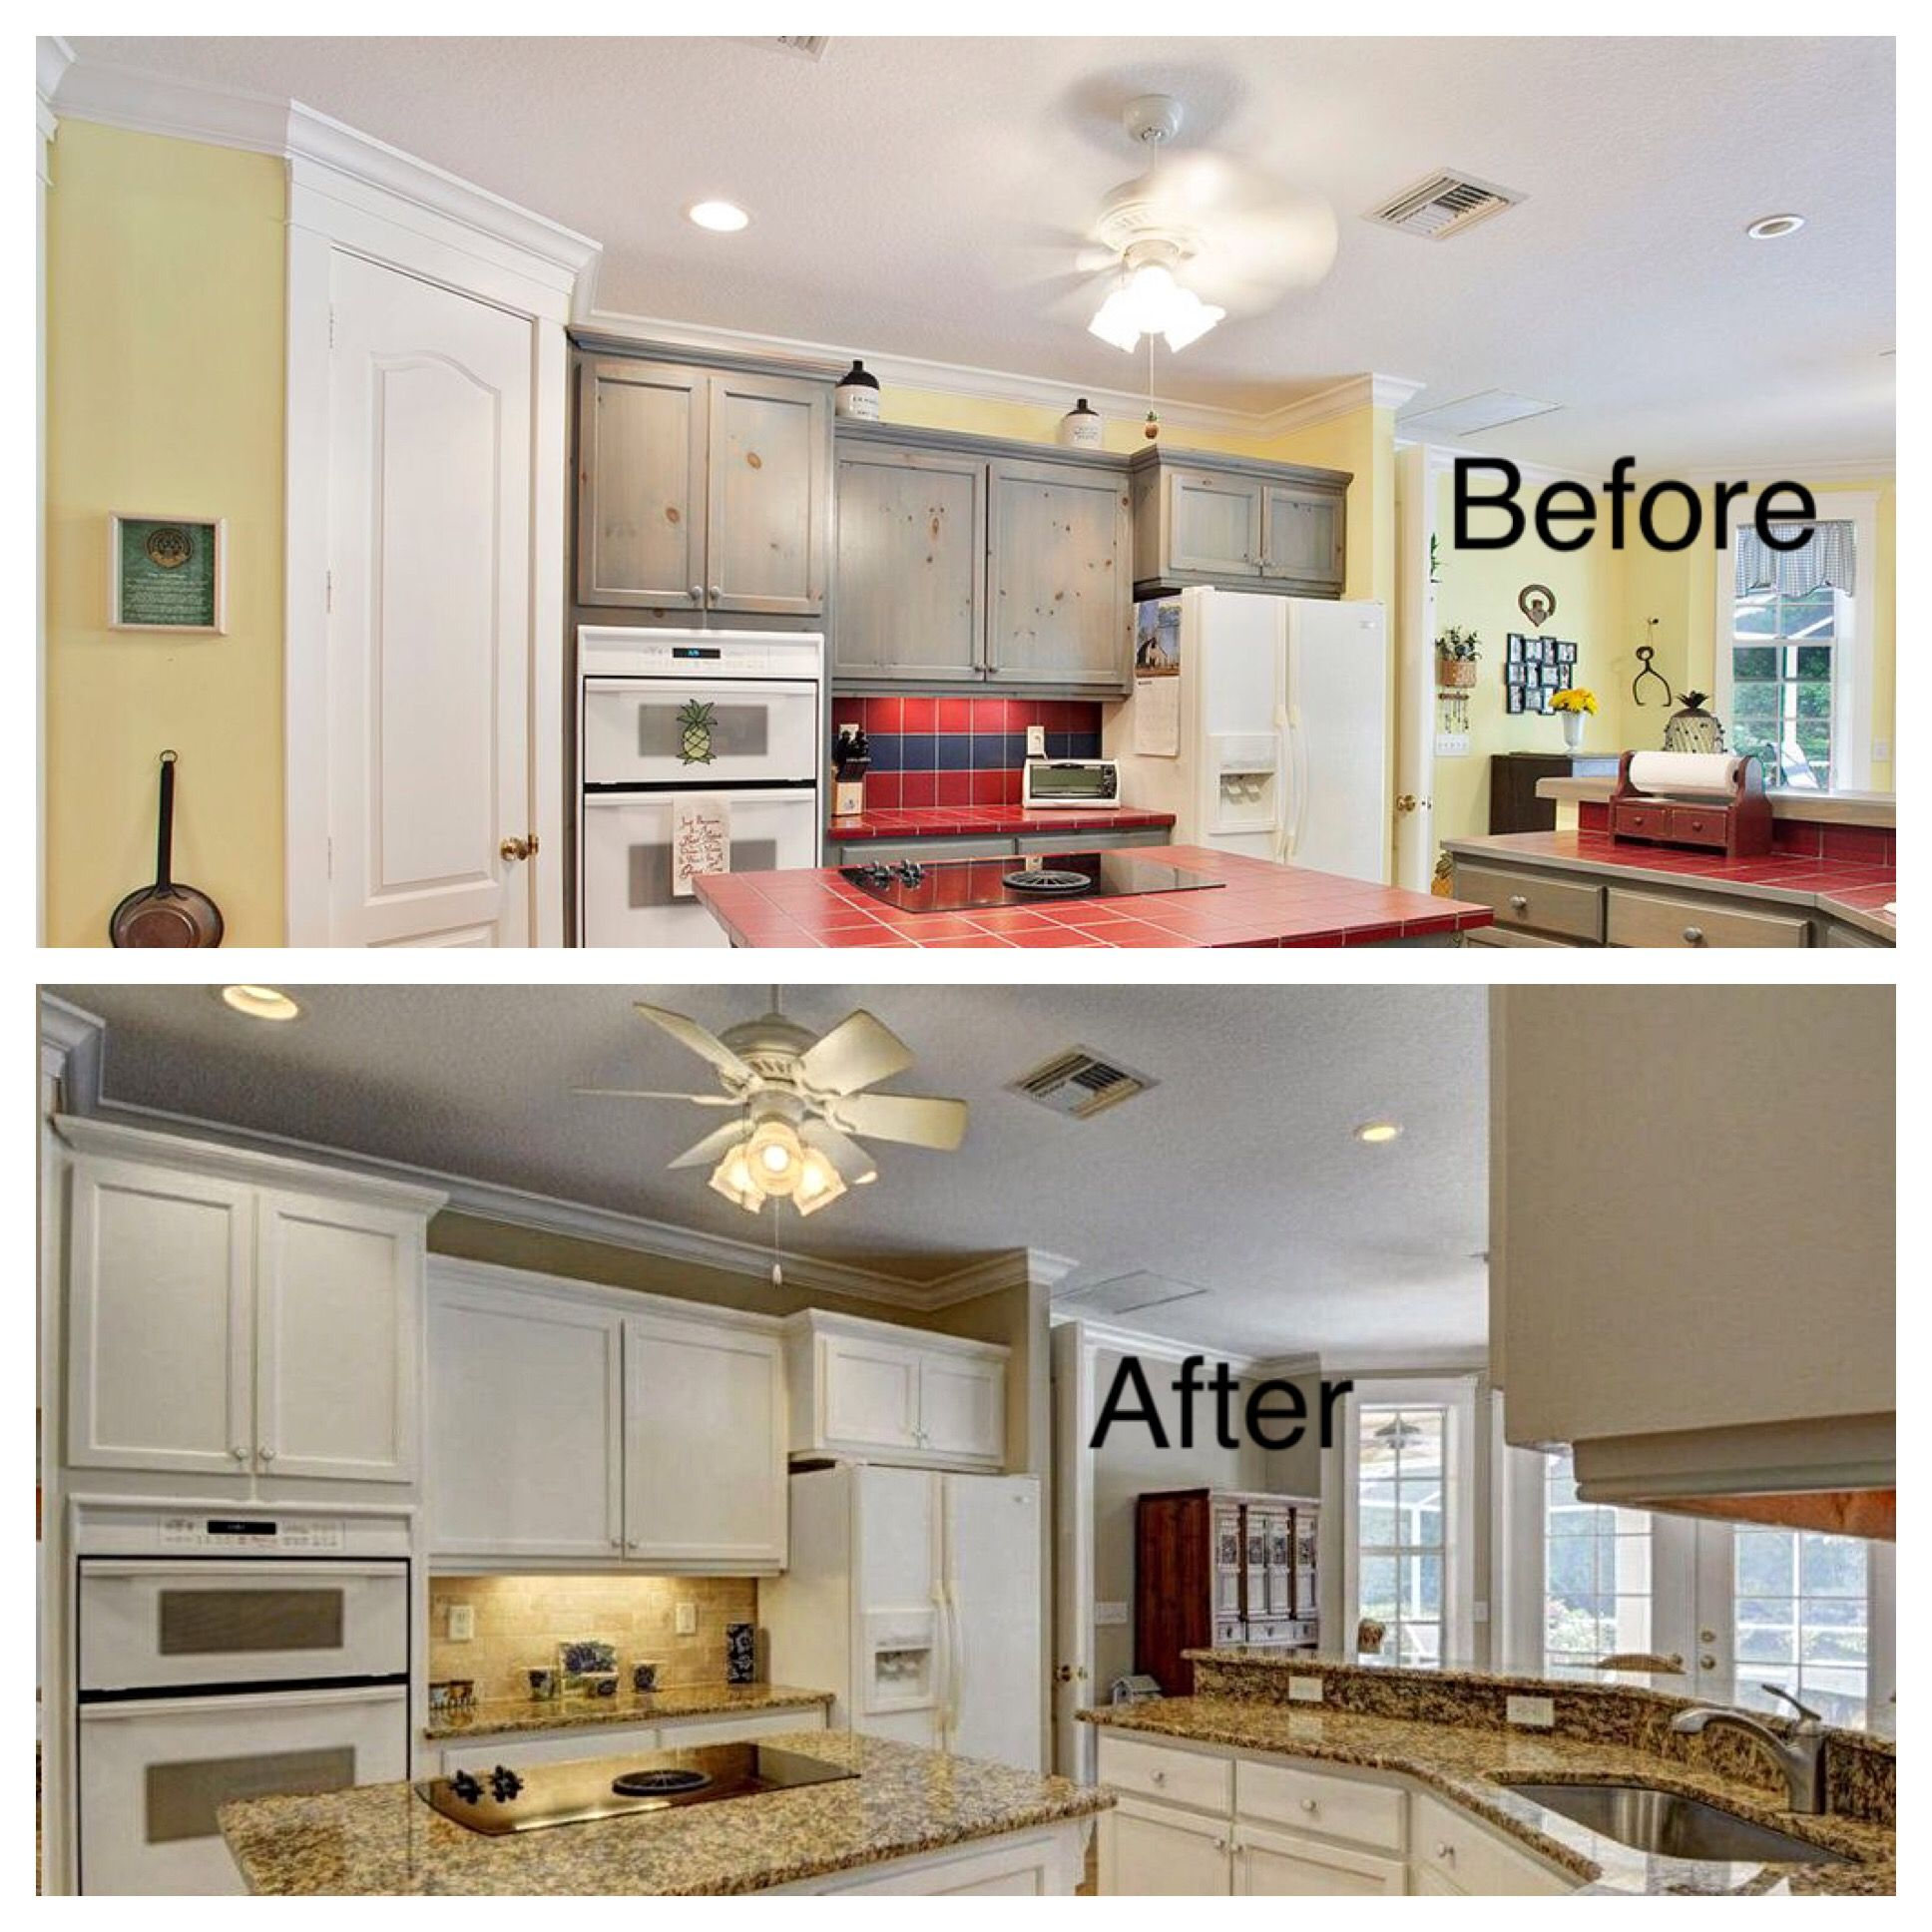 Professional House Painters   Kitchen Cabinet Painting And Refinishing  Company. PGA West, Port Saint